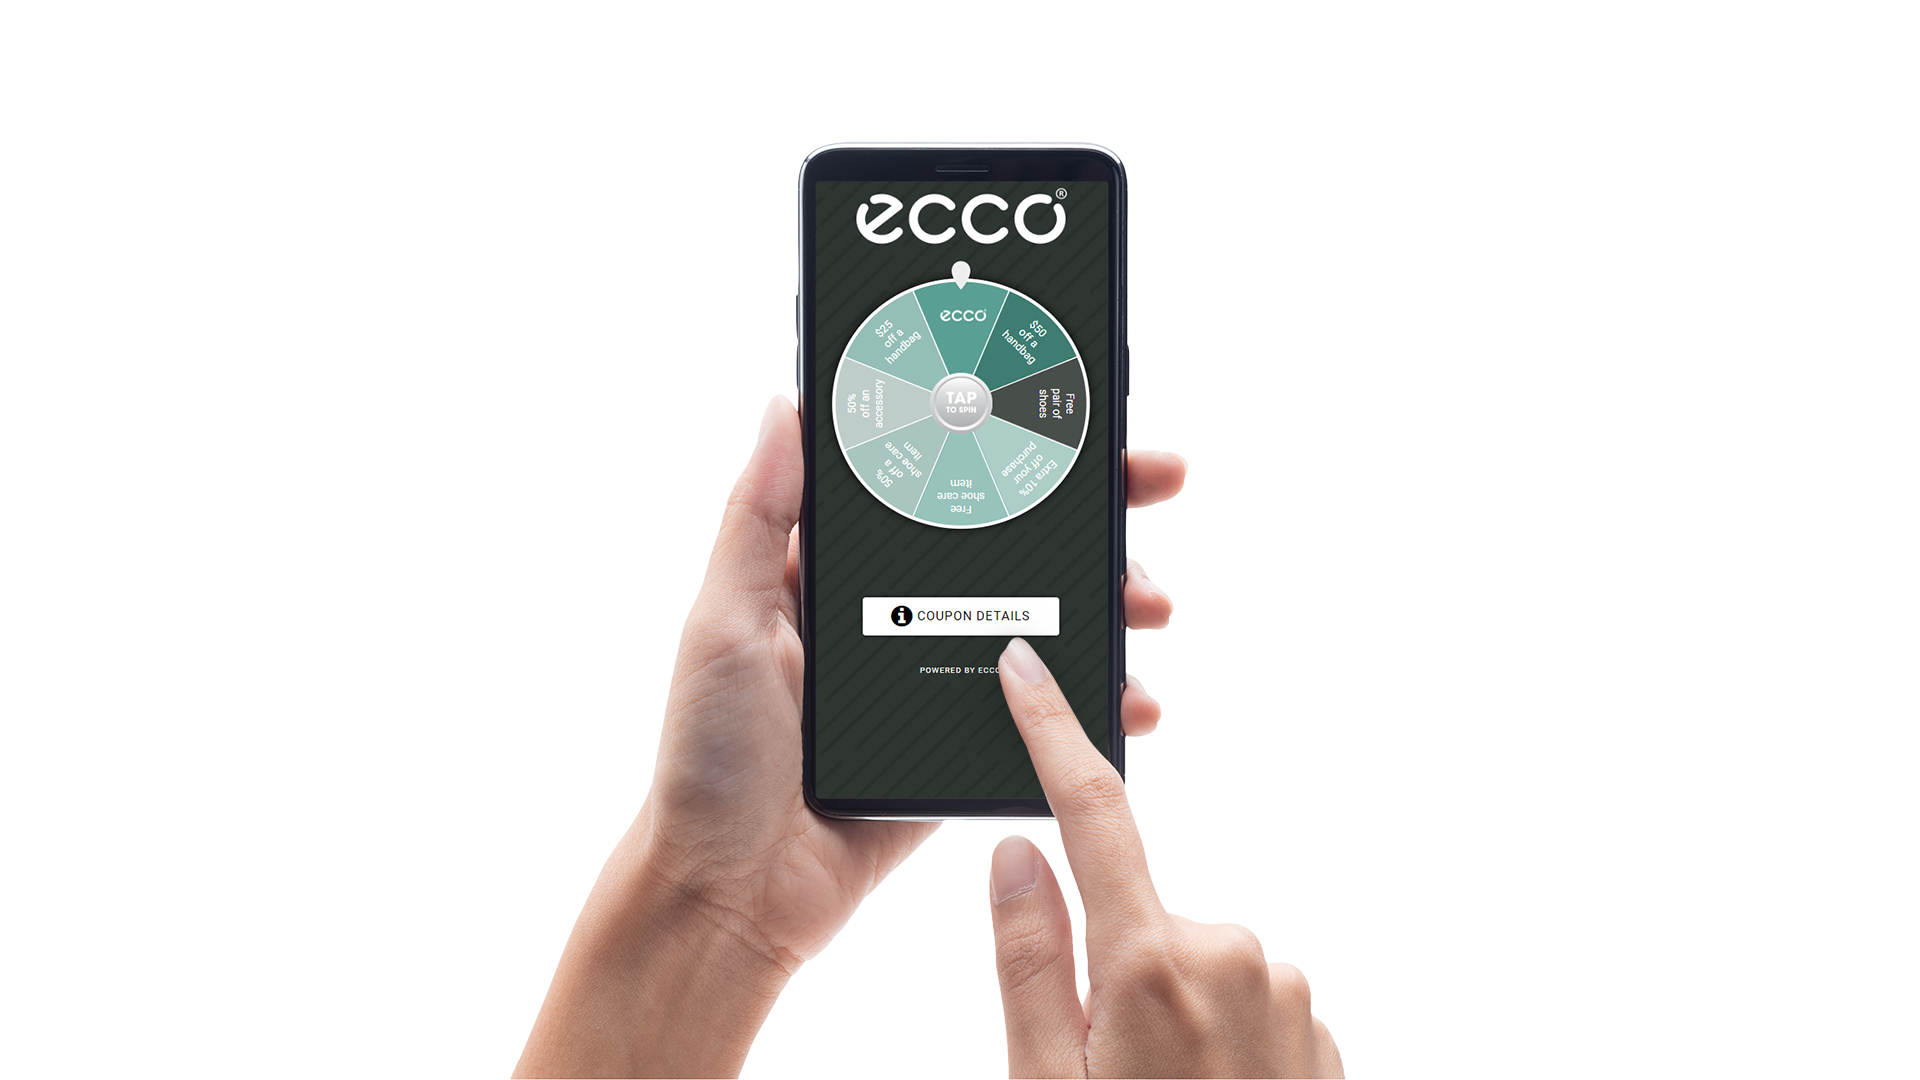 Ecco In-store gamification  use case image